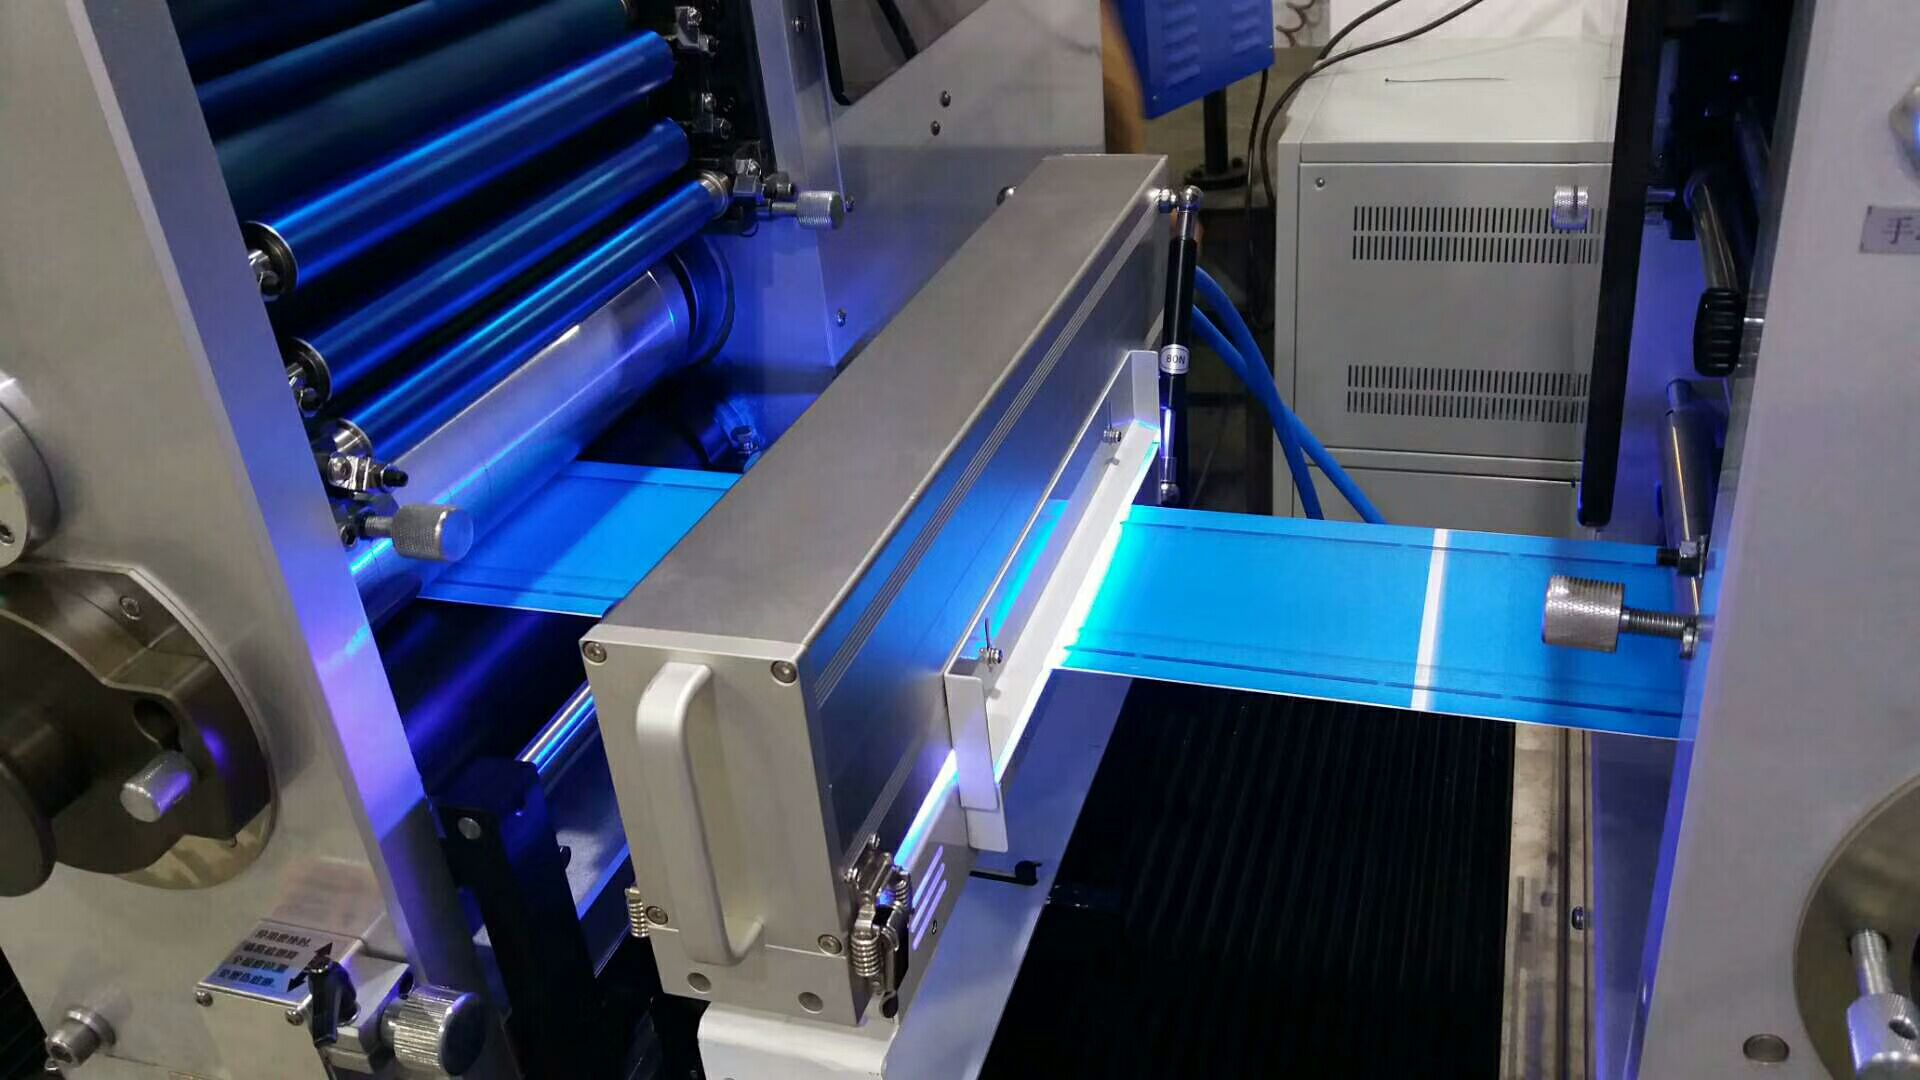 LED UV Curing Machine add in Large Scale Equipment